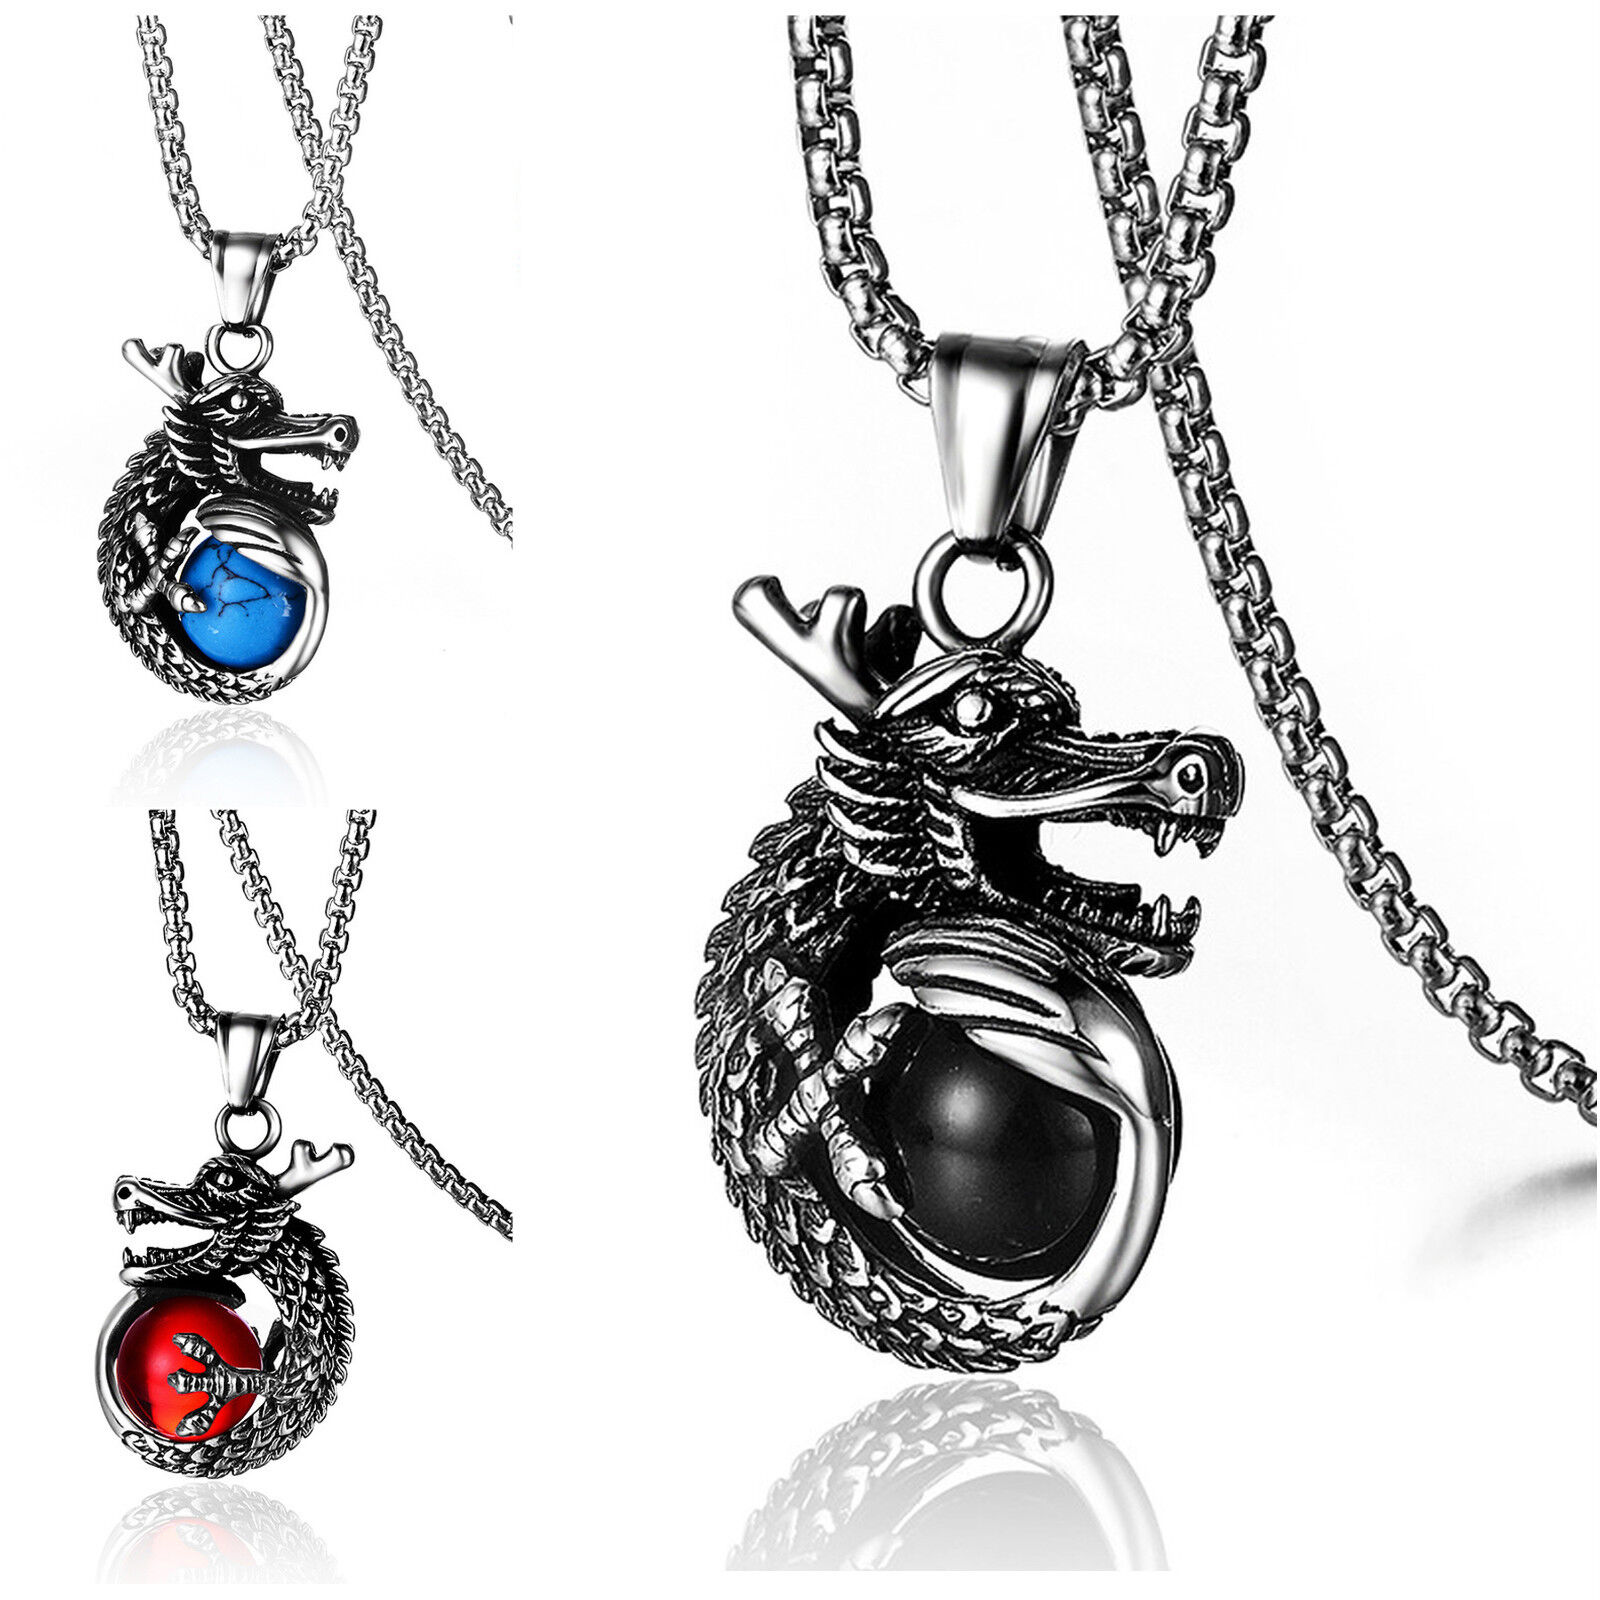 Men's Stainless Steel Dragon and Glass Ball Biker Pendant Necklace Chains, Necklaces & Pendants